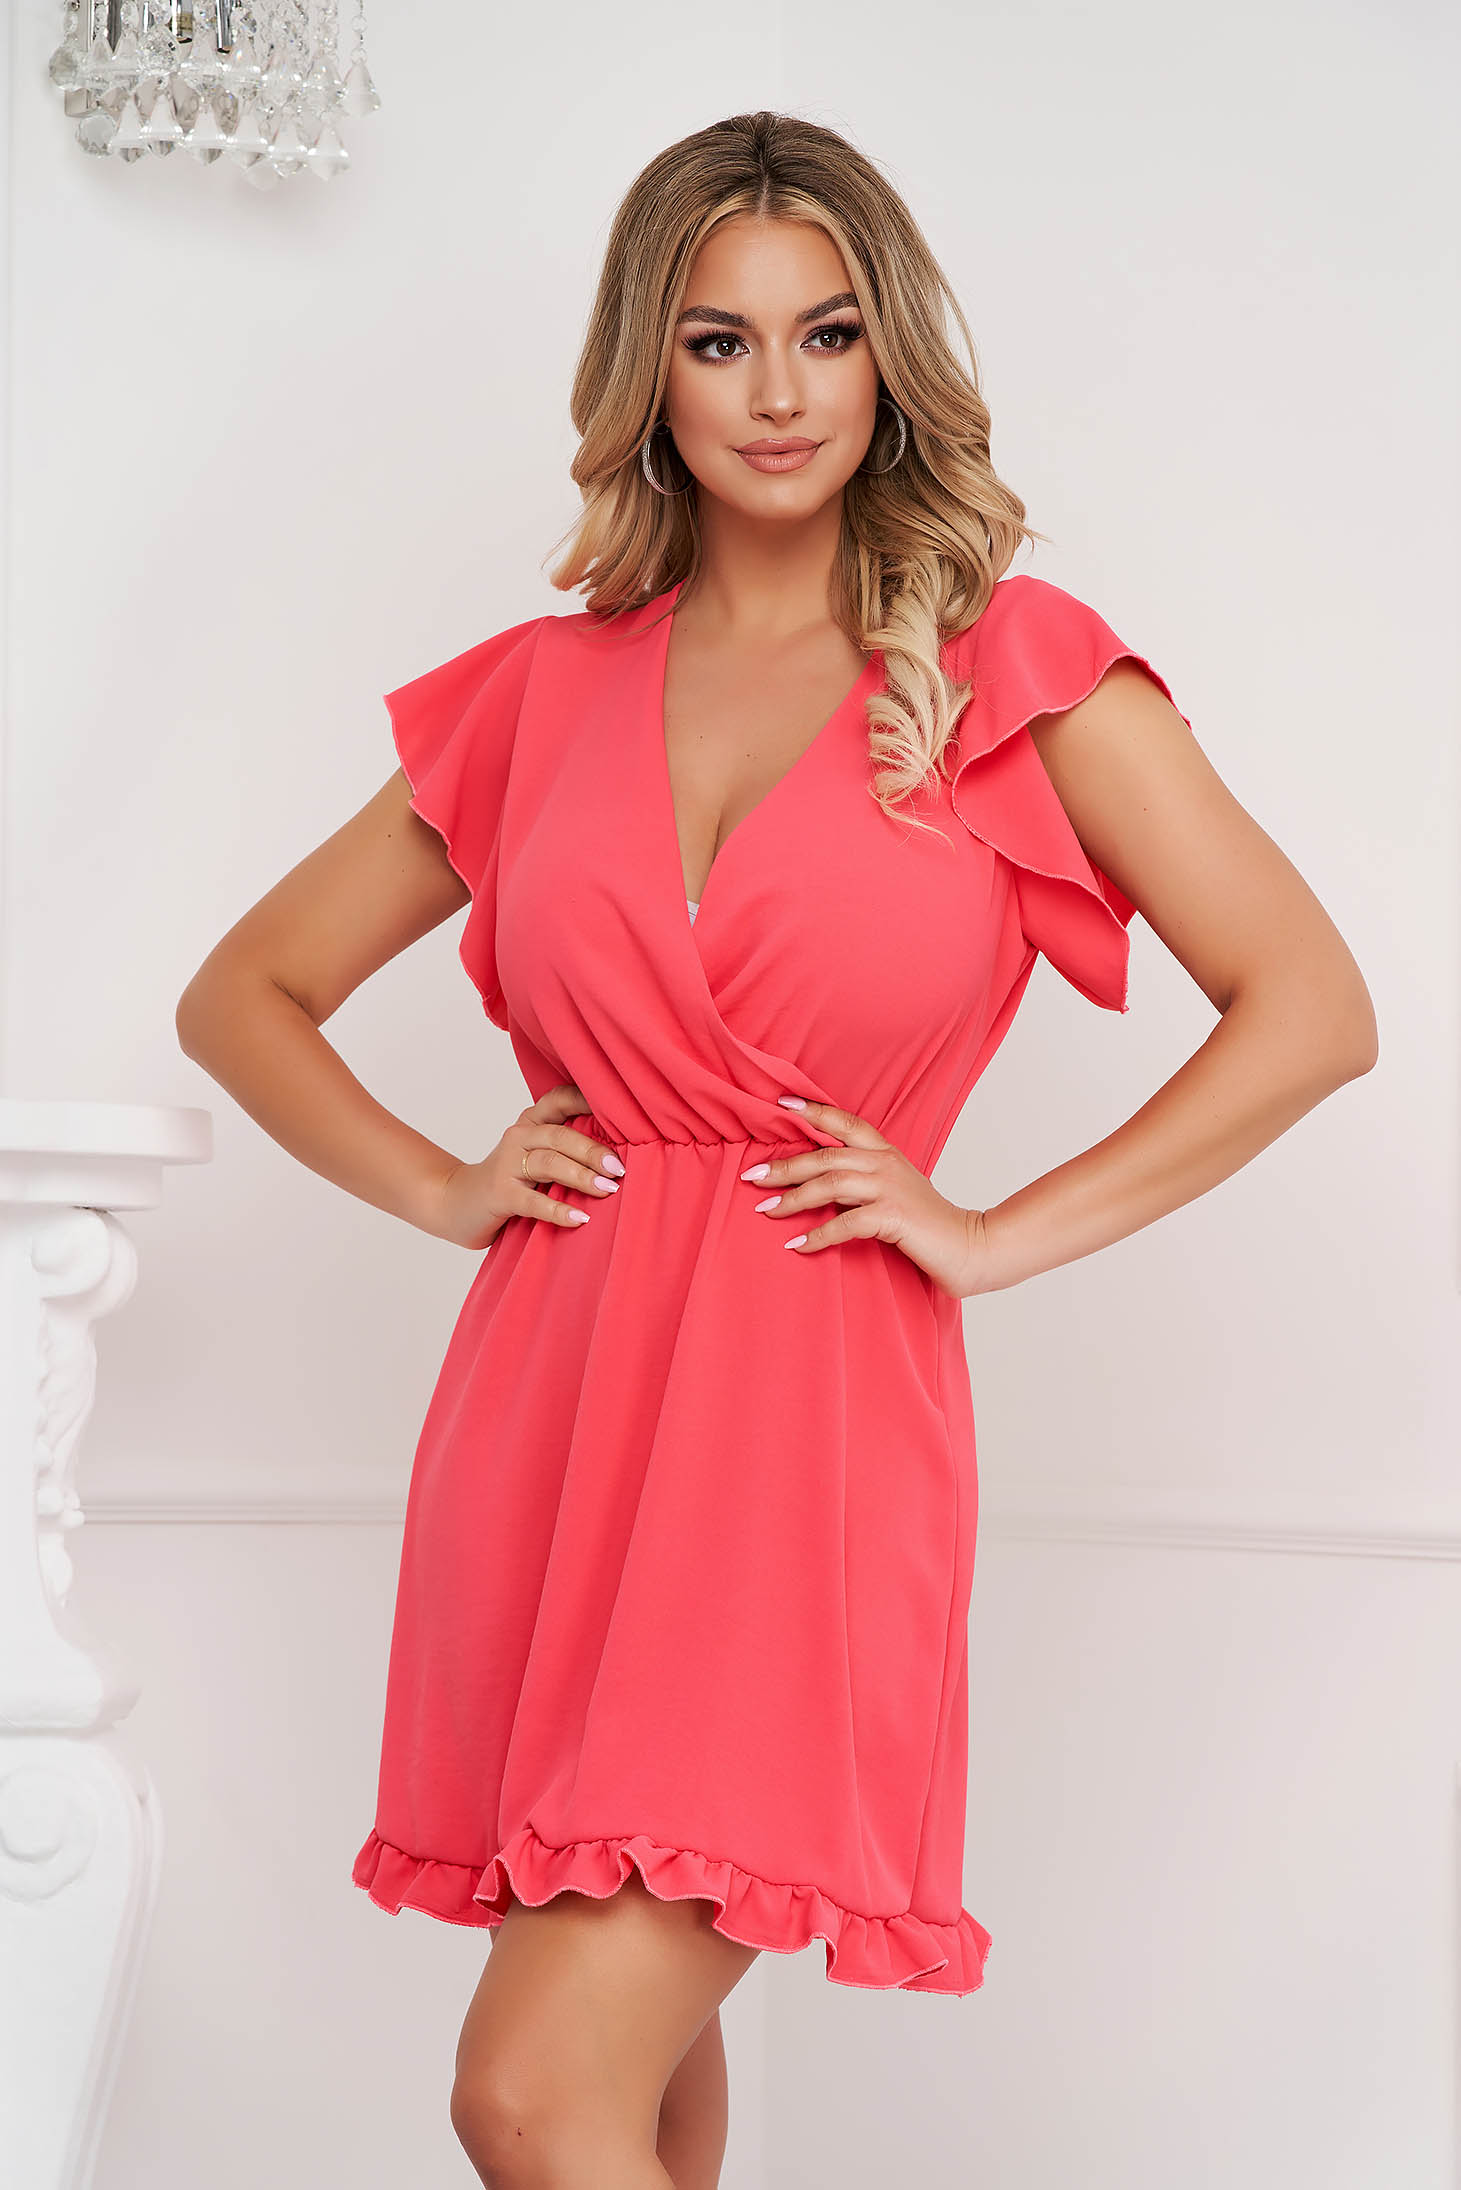 Pink dress short cut cloche with elastic waist wrinkled texture with ruffle details